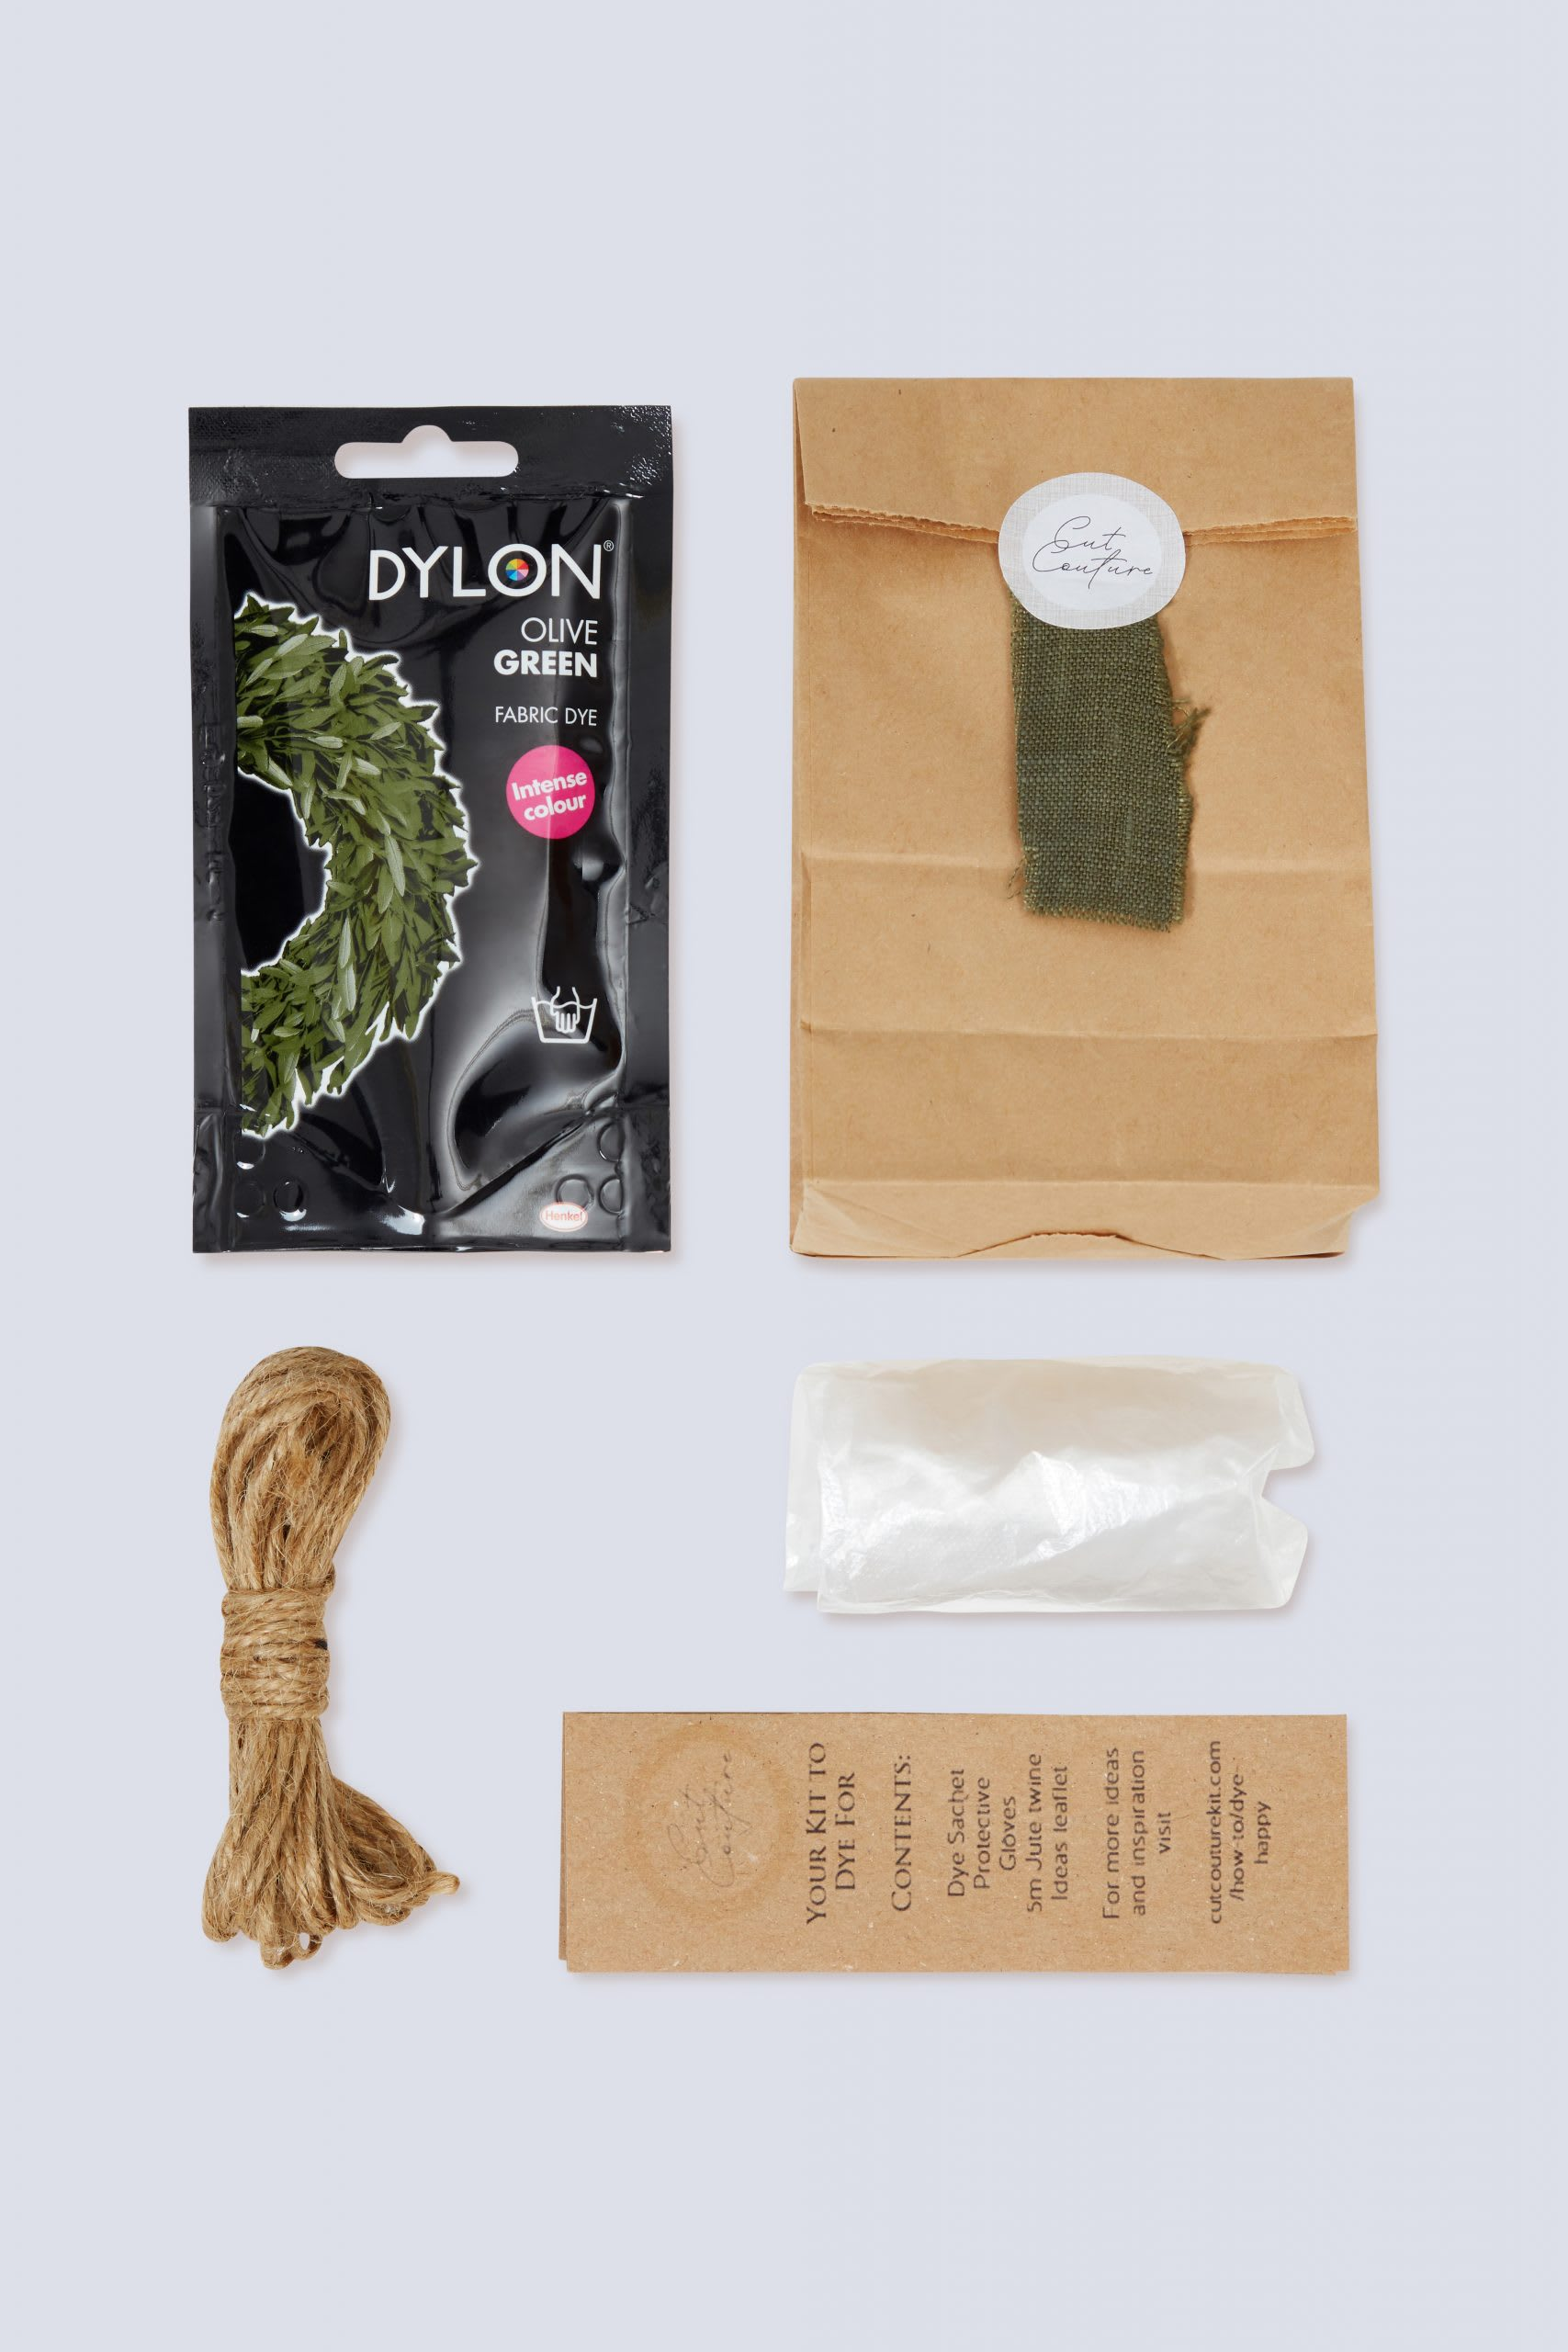 Olive green Dylon dye jute twine gloves information leaflet with bag and colour swatch